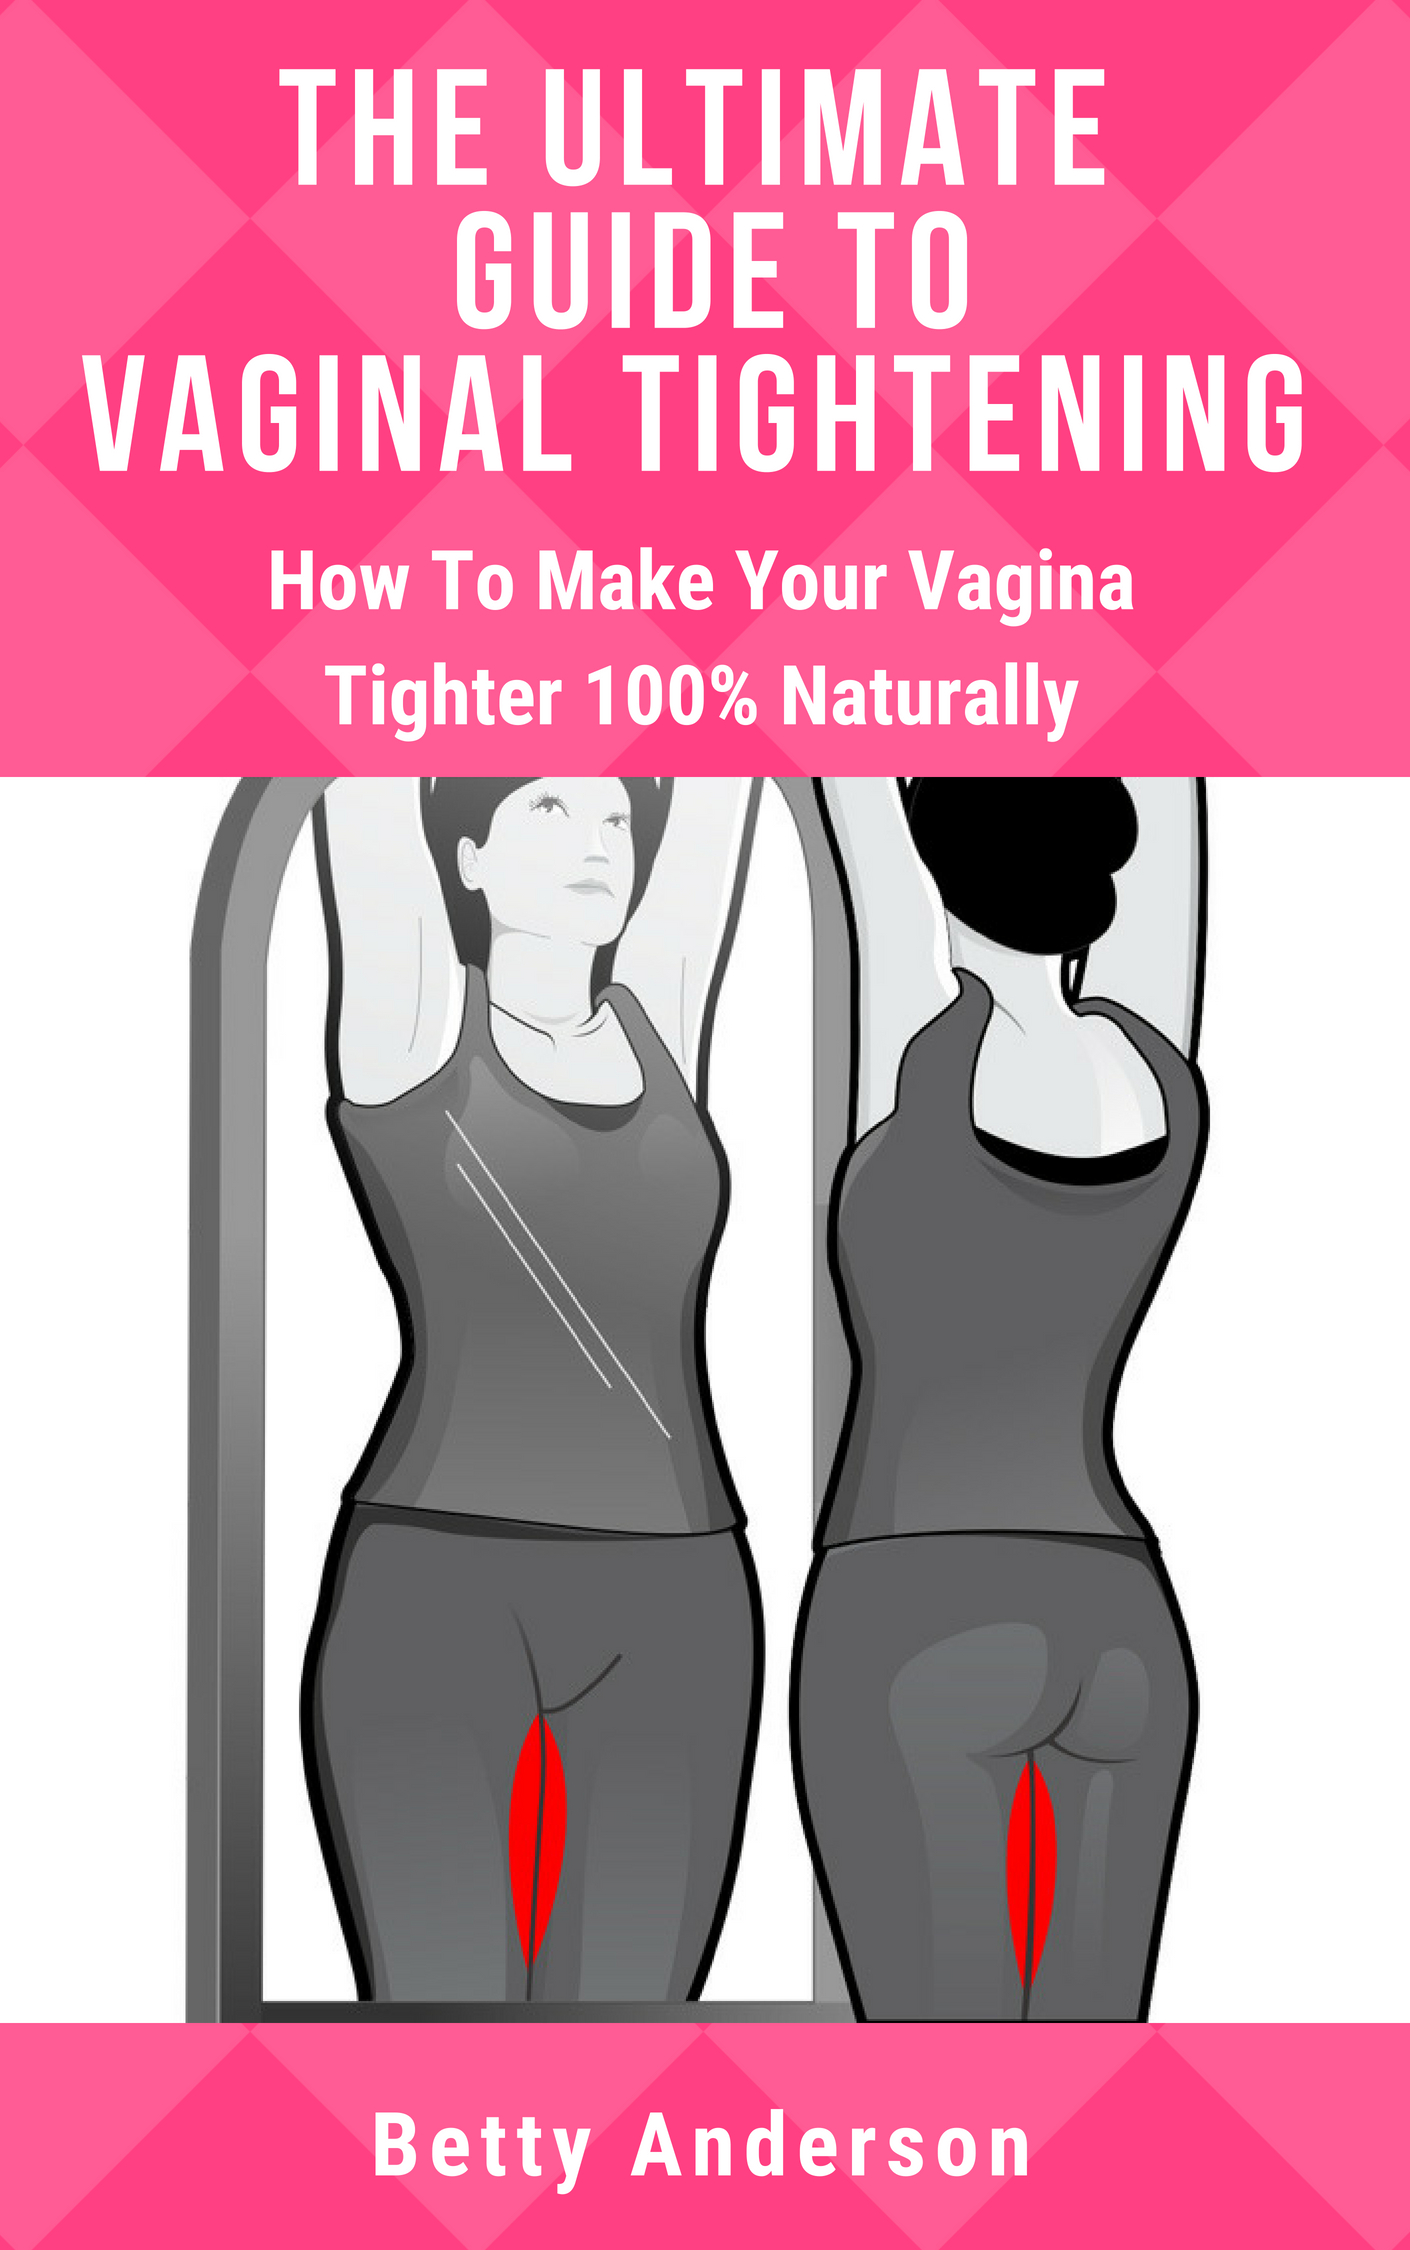 The Ultimate Guide To Vaginal Tightening